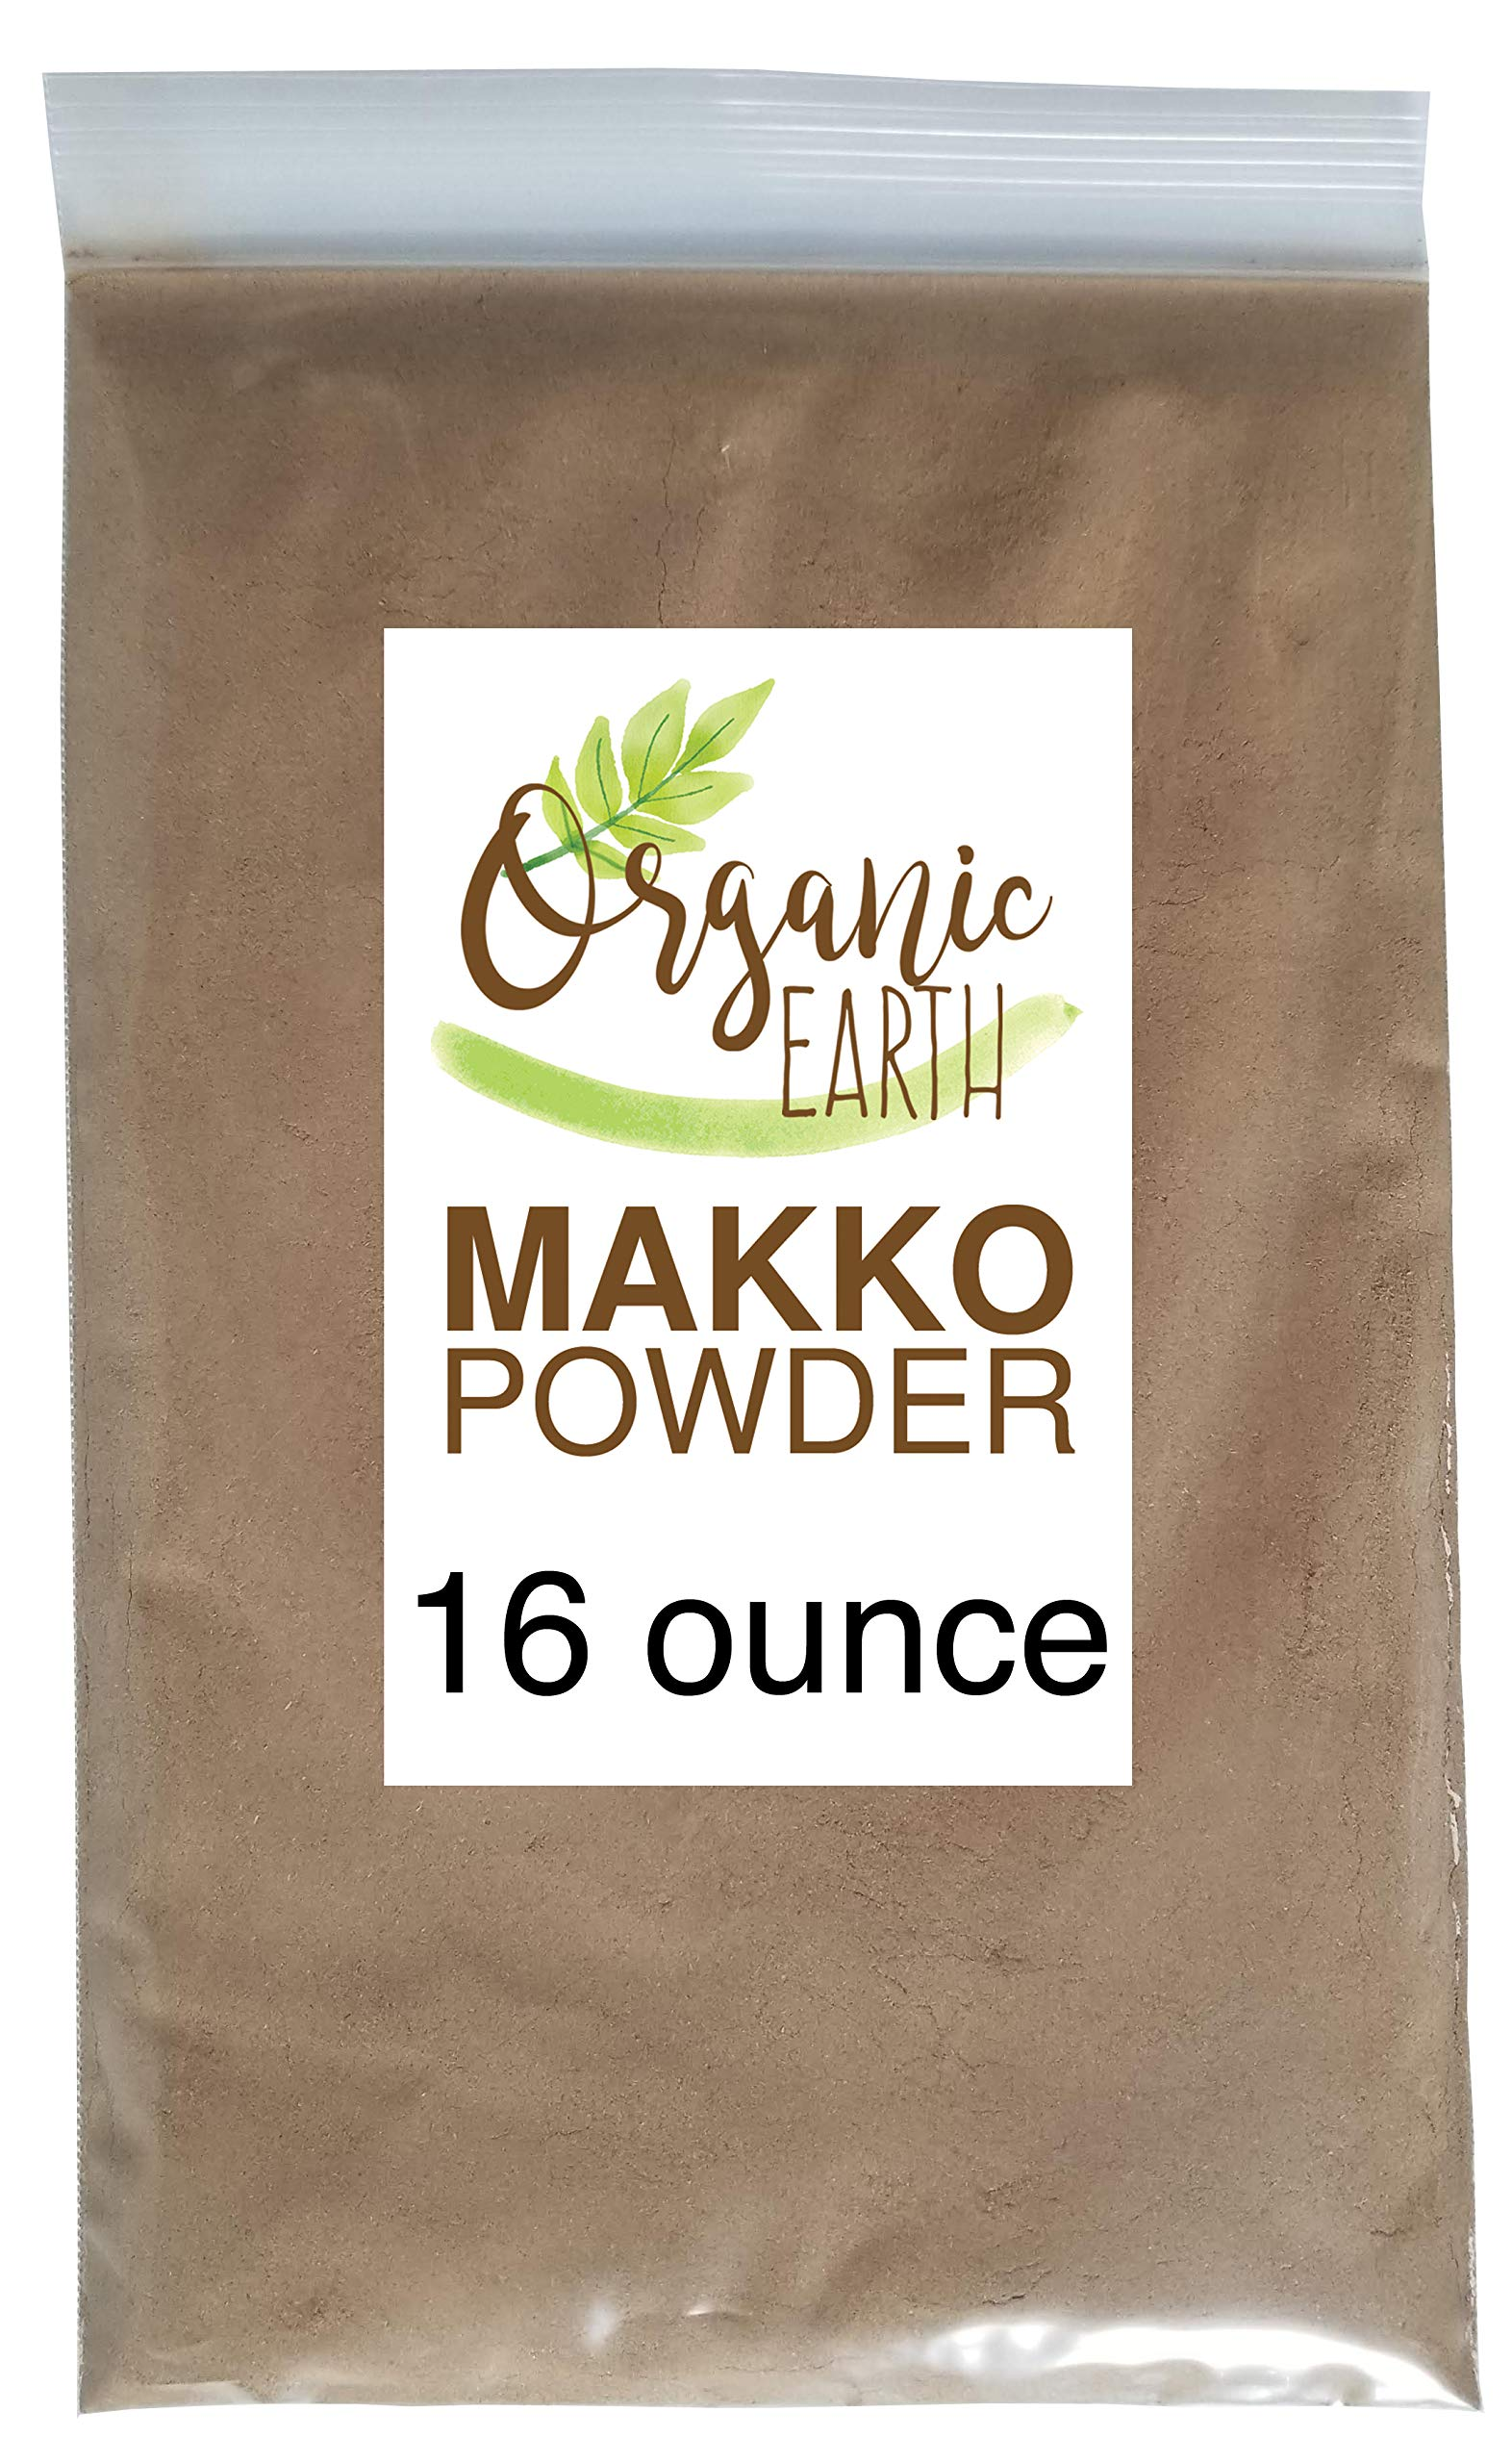 Organic Earth Makko Powder - High Grade Premium Incense for Making Cones and Coil Incense DIY Gift 500 Grams (16 Ounce) by Organic Earth